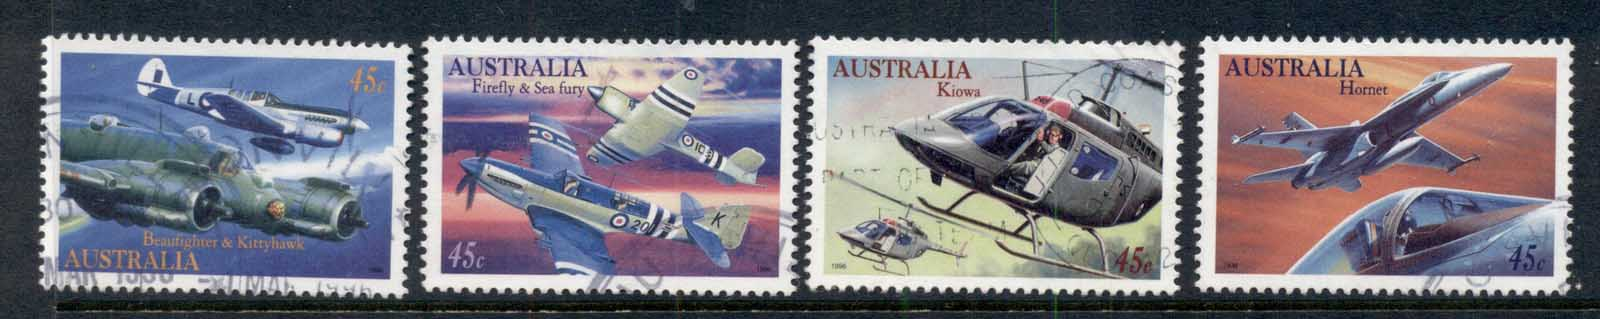 Australia 1996 Military Aviation FU